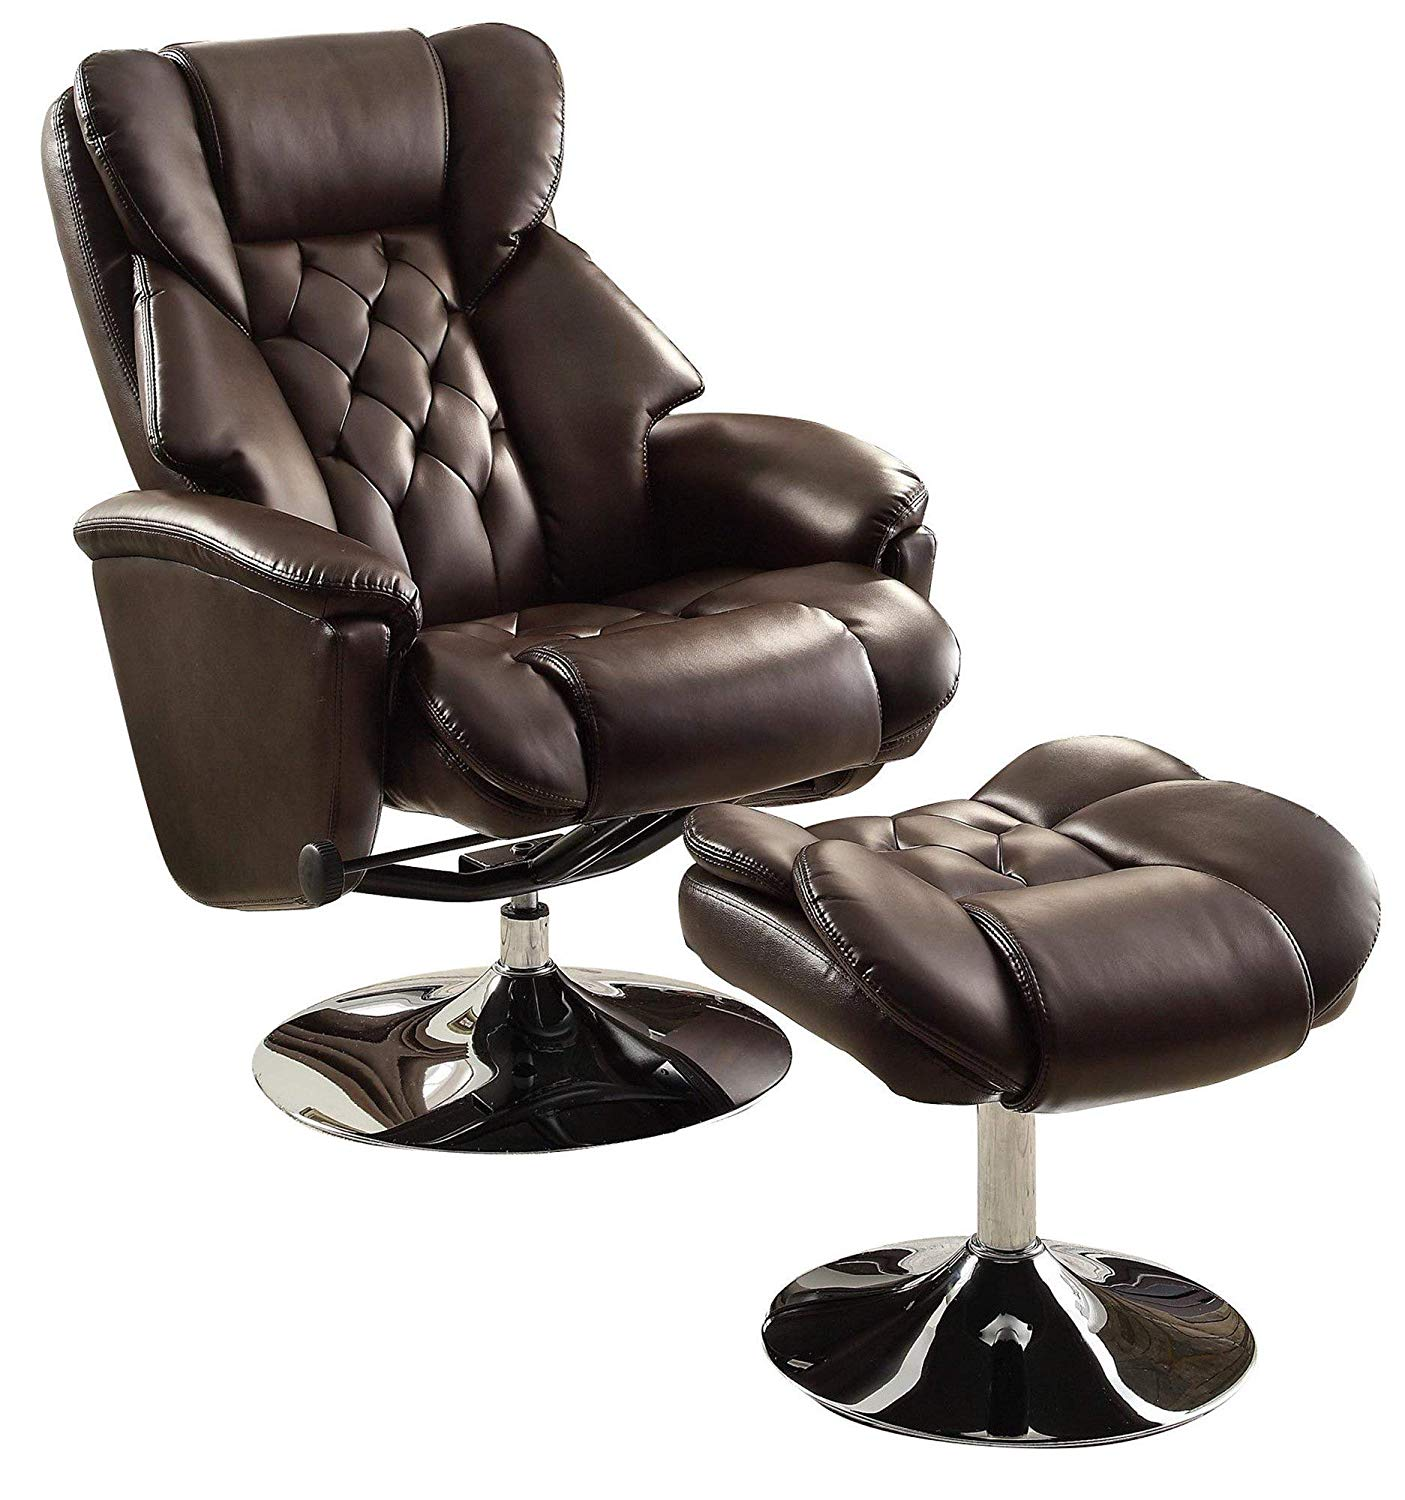 Wondrous Cheap Leather Swivel Recliner Chair Suppliers Find Leather Pabps2019 Chair Design Images Pabps2019Com